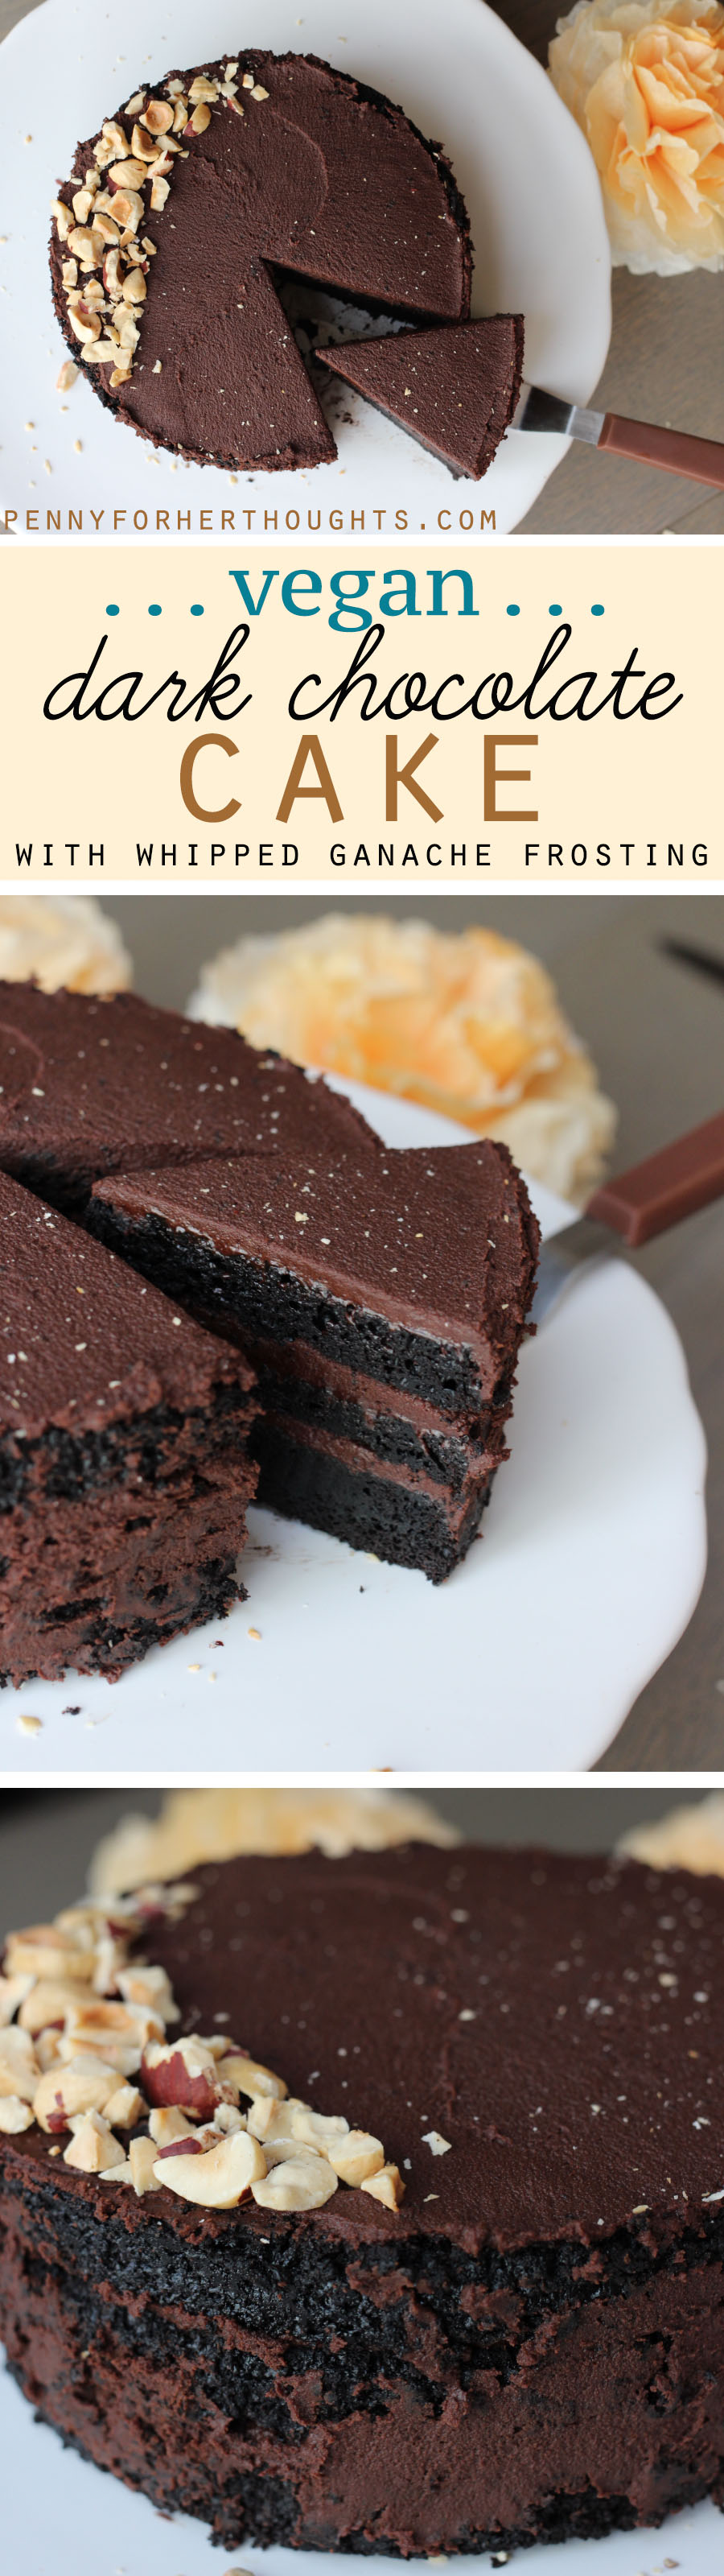 Vegan Dark Chocolate Cake + Whipped Ganache Frosting